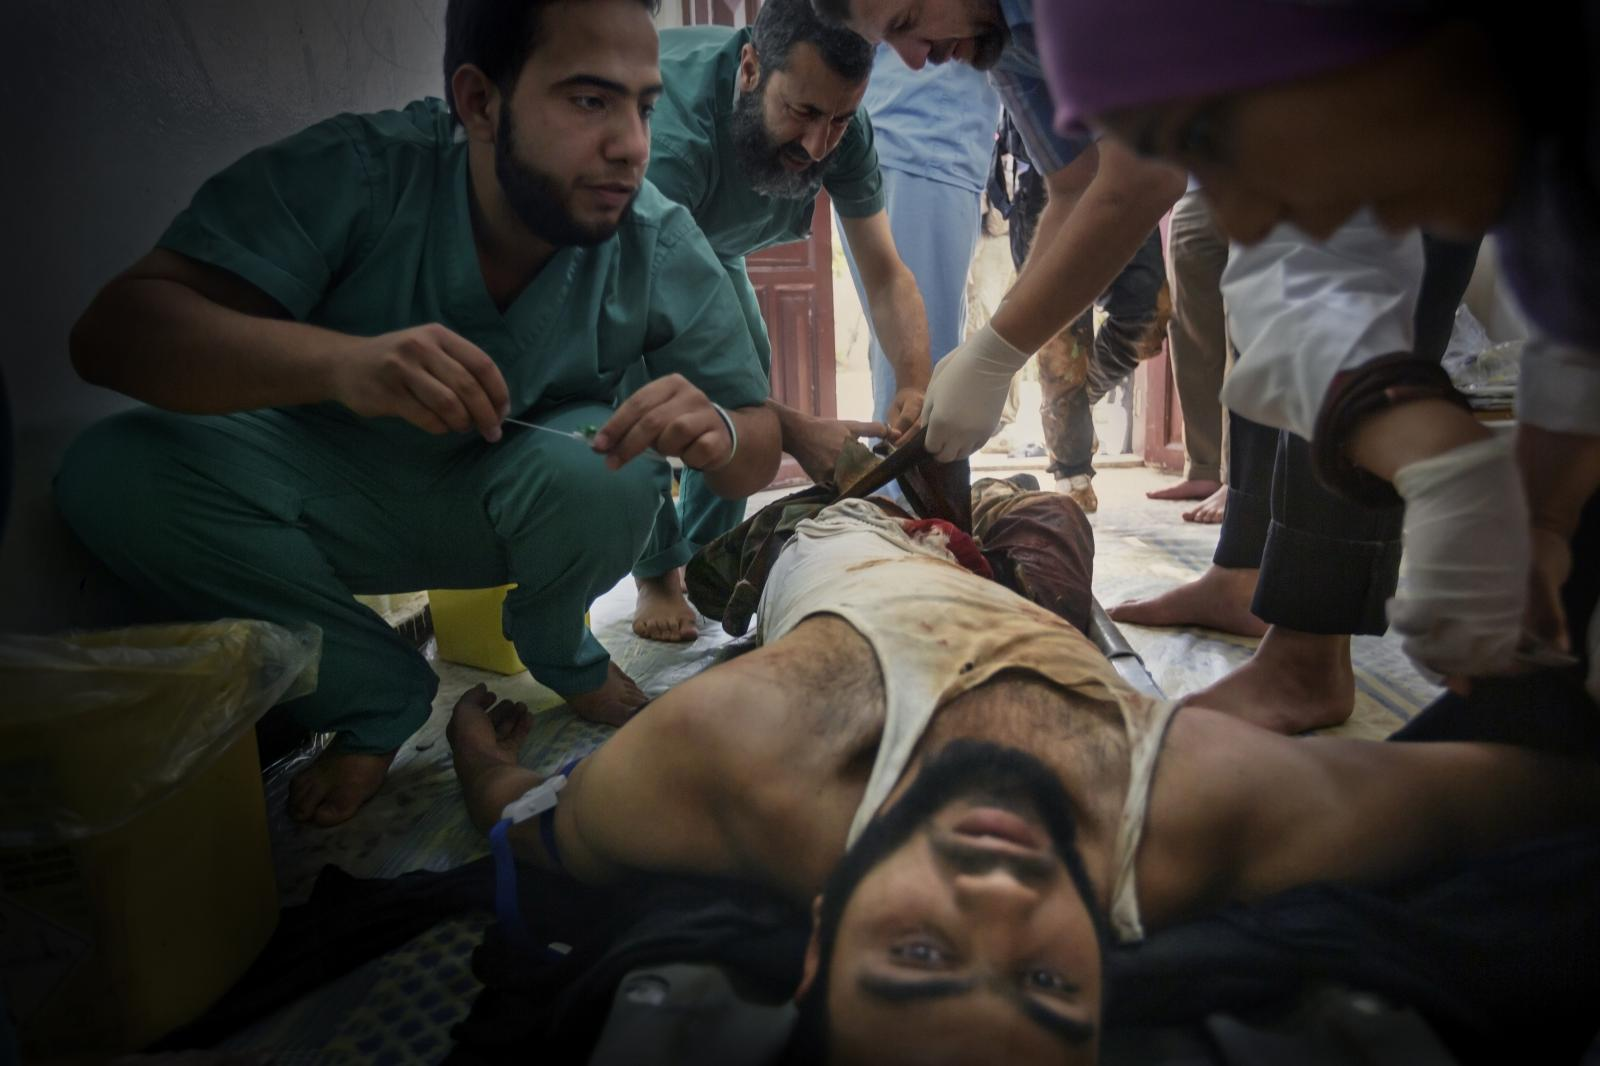 A man is treated for serious injuries from a mortar attack on the floor at the entrance to a makeshift hospital. The same day, there were 27 injured and 5 dead in Al Qasir Hospital (Homs province), where only one of the 20 staff members was a doctor (Syria, 2012)